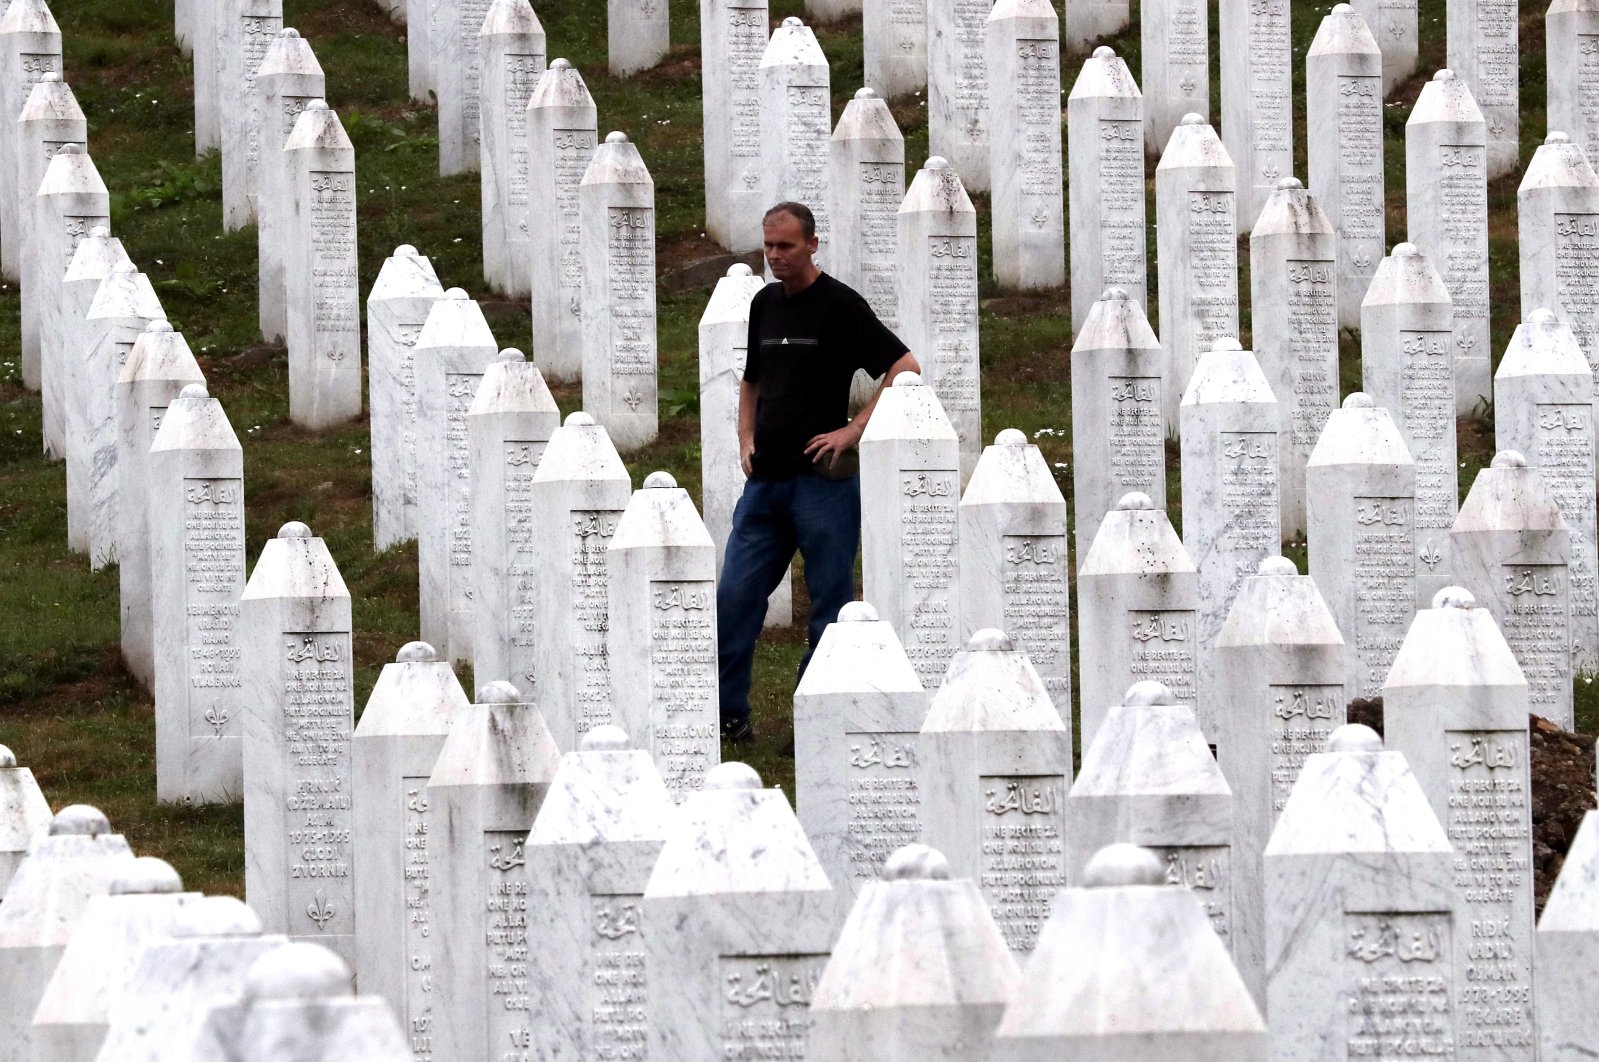 A Bosnian Muslim man mourns while touching a gravestone during a funeral ceremony for nineteen newly-identified Bosnian Muslim victims, at the Potocari Memorial Center and Cemetery, in Srebrenica, Bosnia-Herzegovina, July 11, 2021. (EPA Photo)